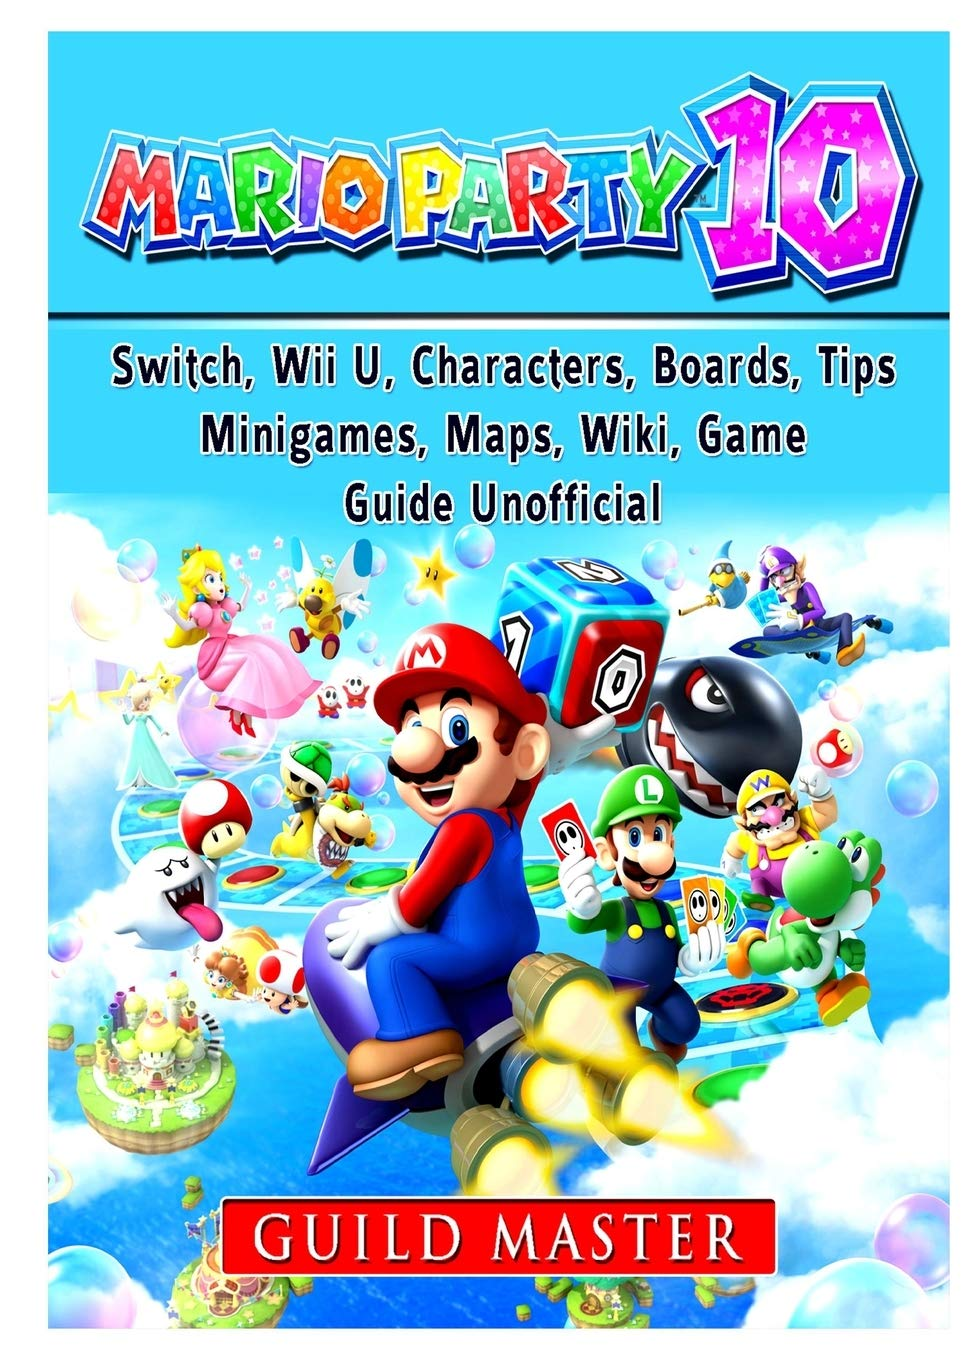 Buy Super Mario Party 10, Switch, Wii U, Characters, Boards ...